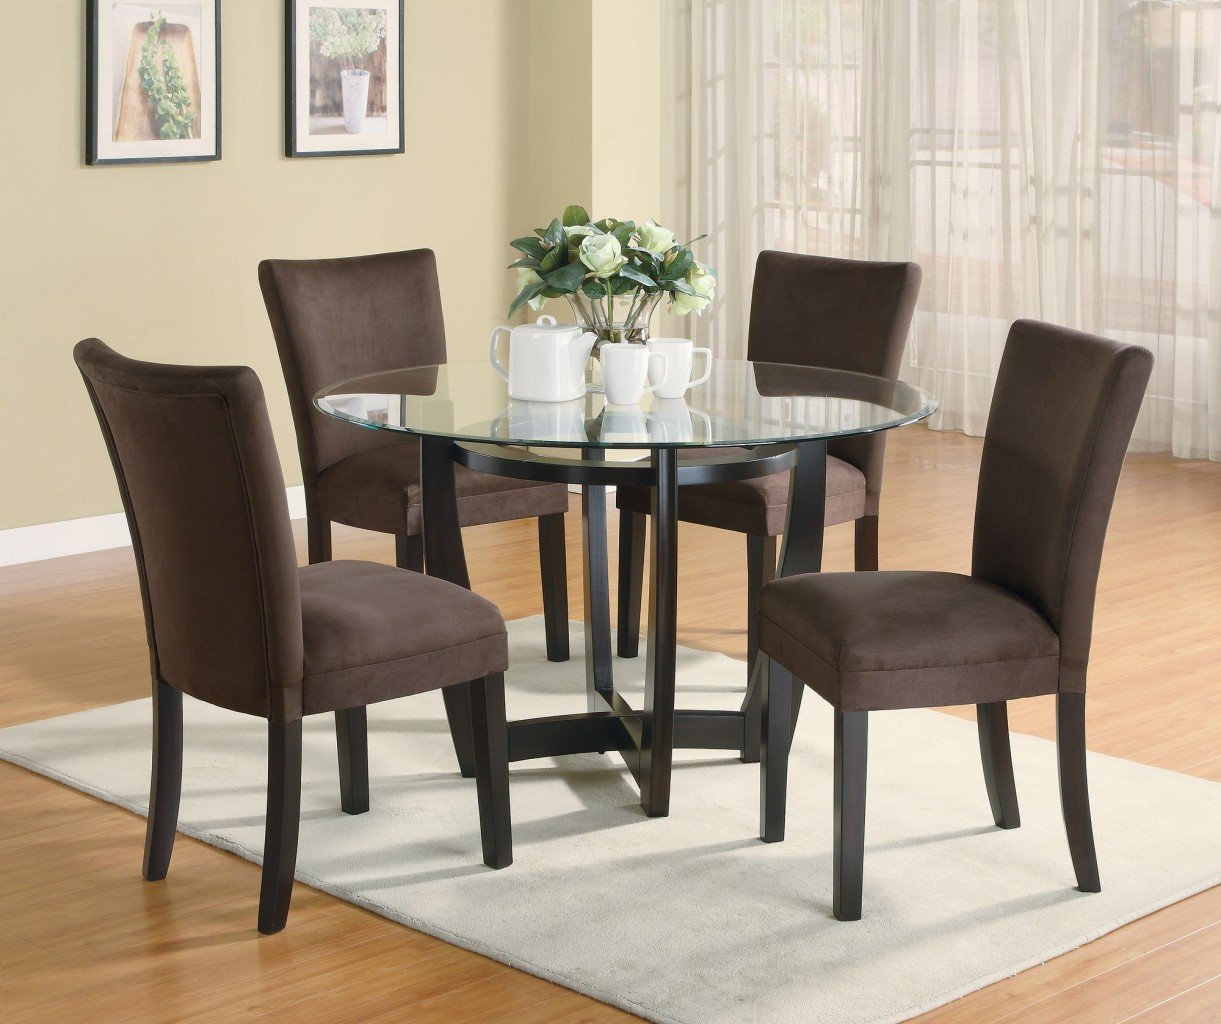 Cheap dining room table sets home furniture design for Small dining room table and chairs